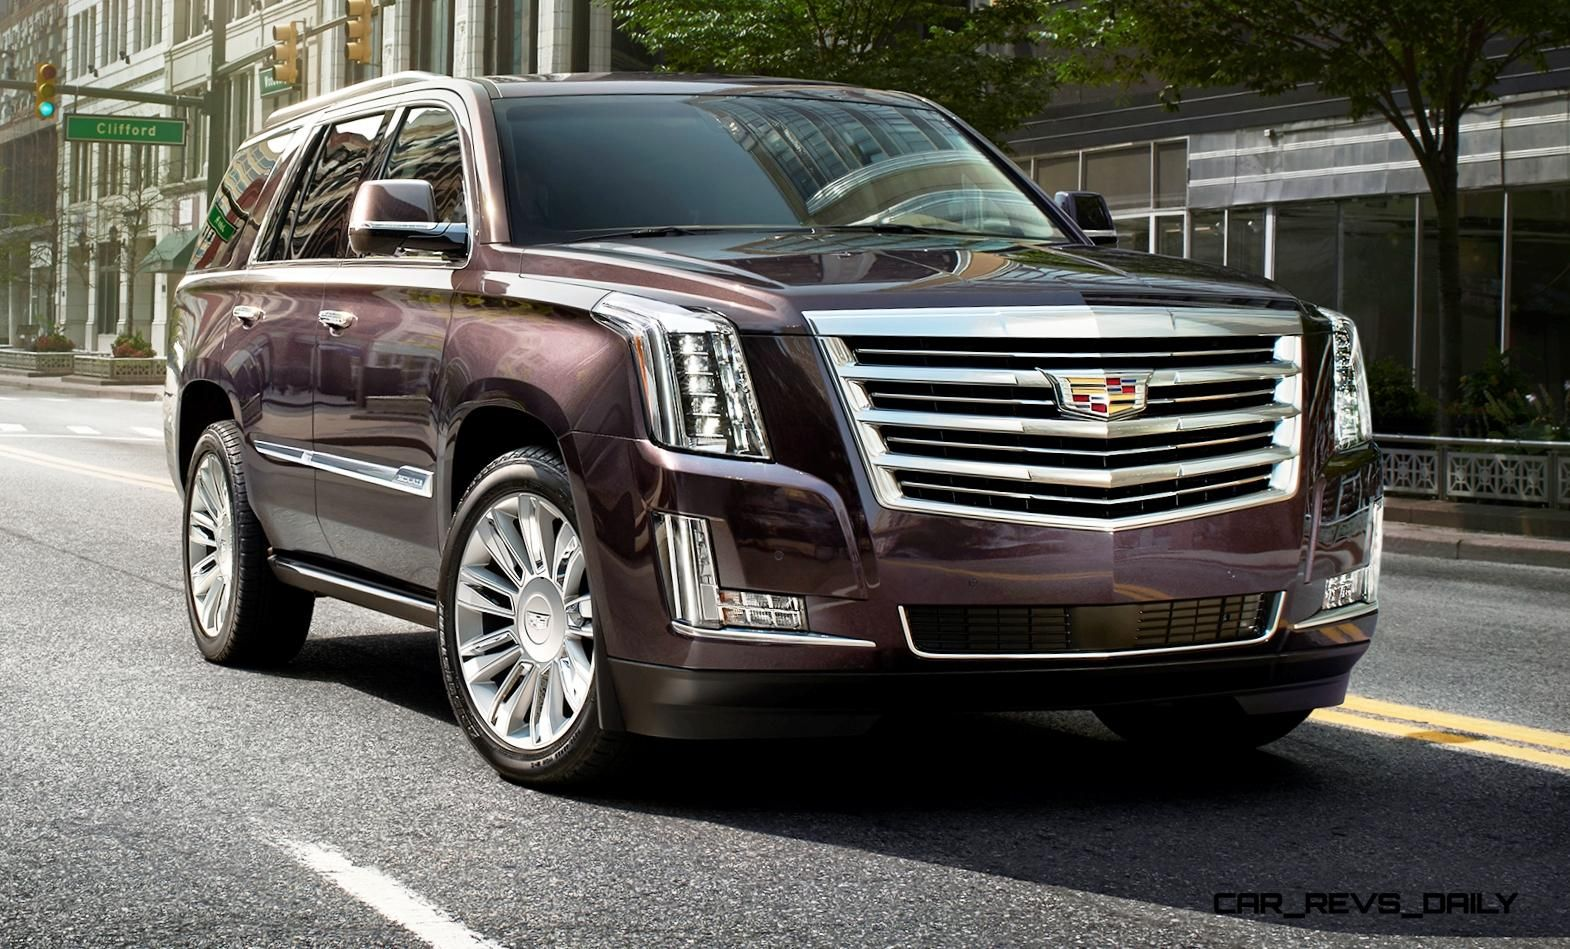 2015 cadillac escalade platinum brings new crest emblem 8 sp auto and posher cabin from